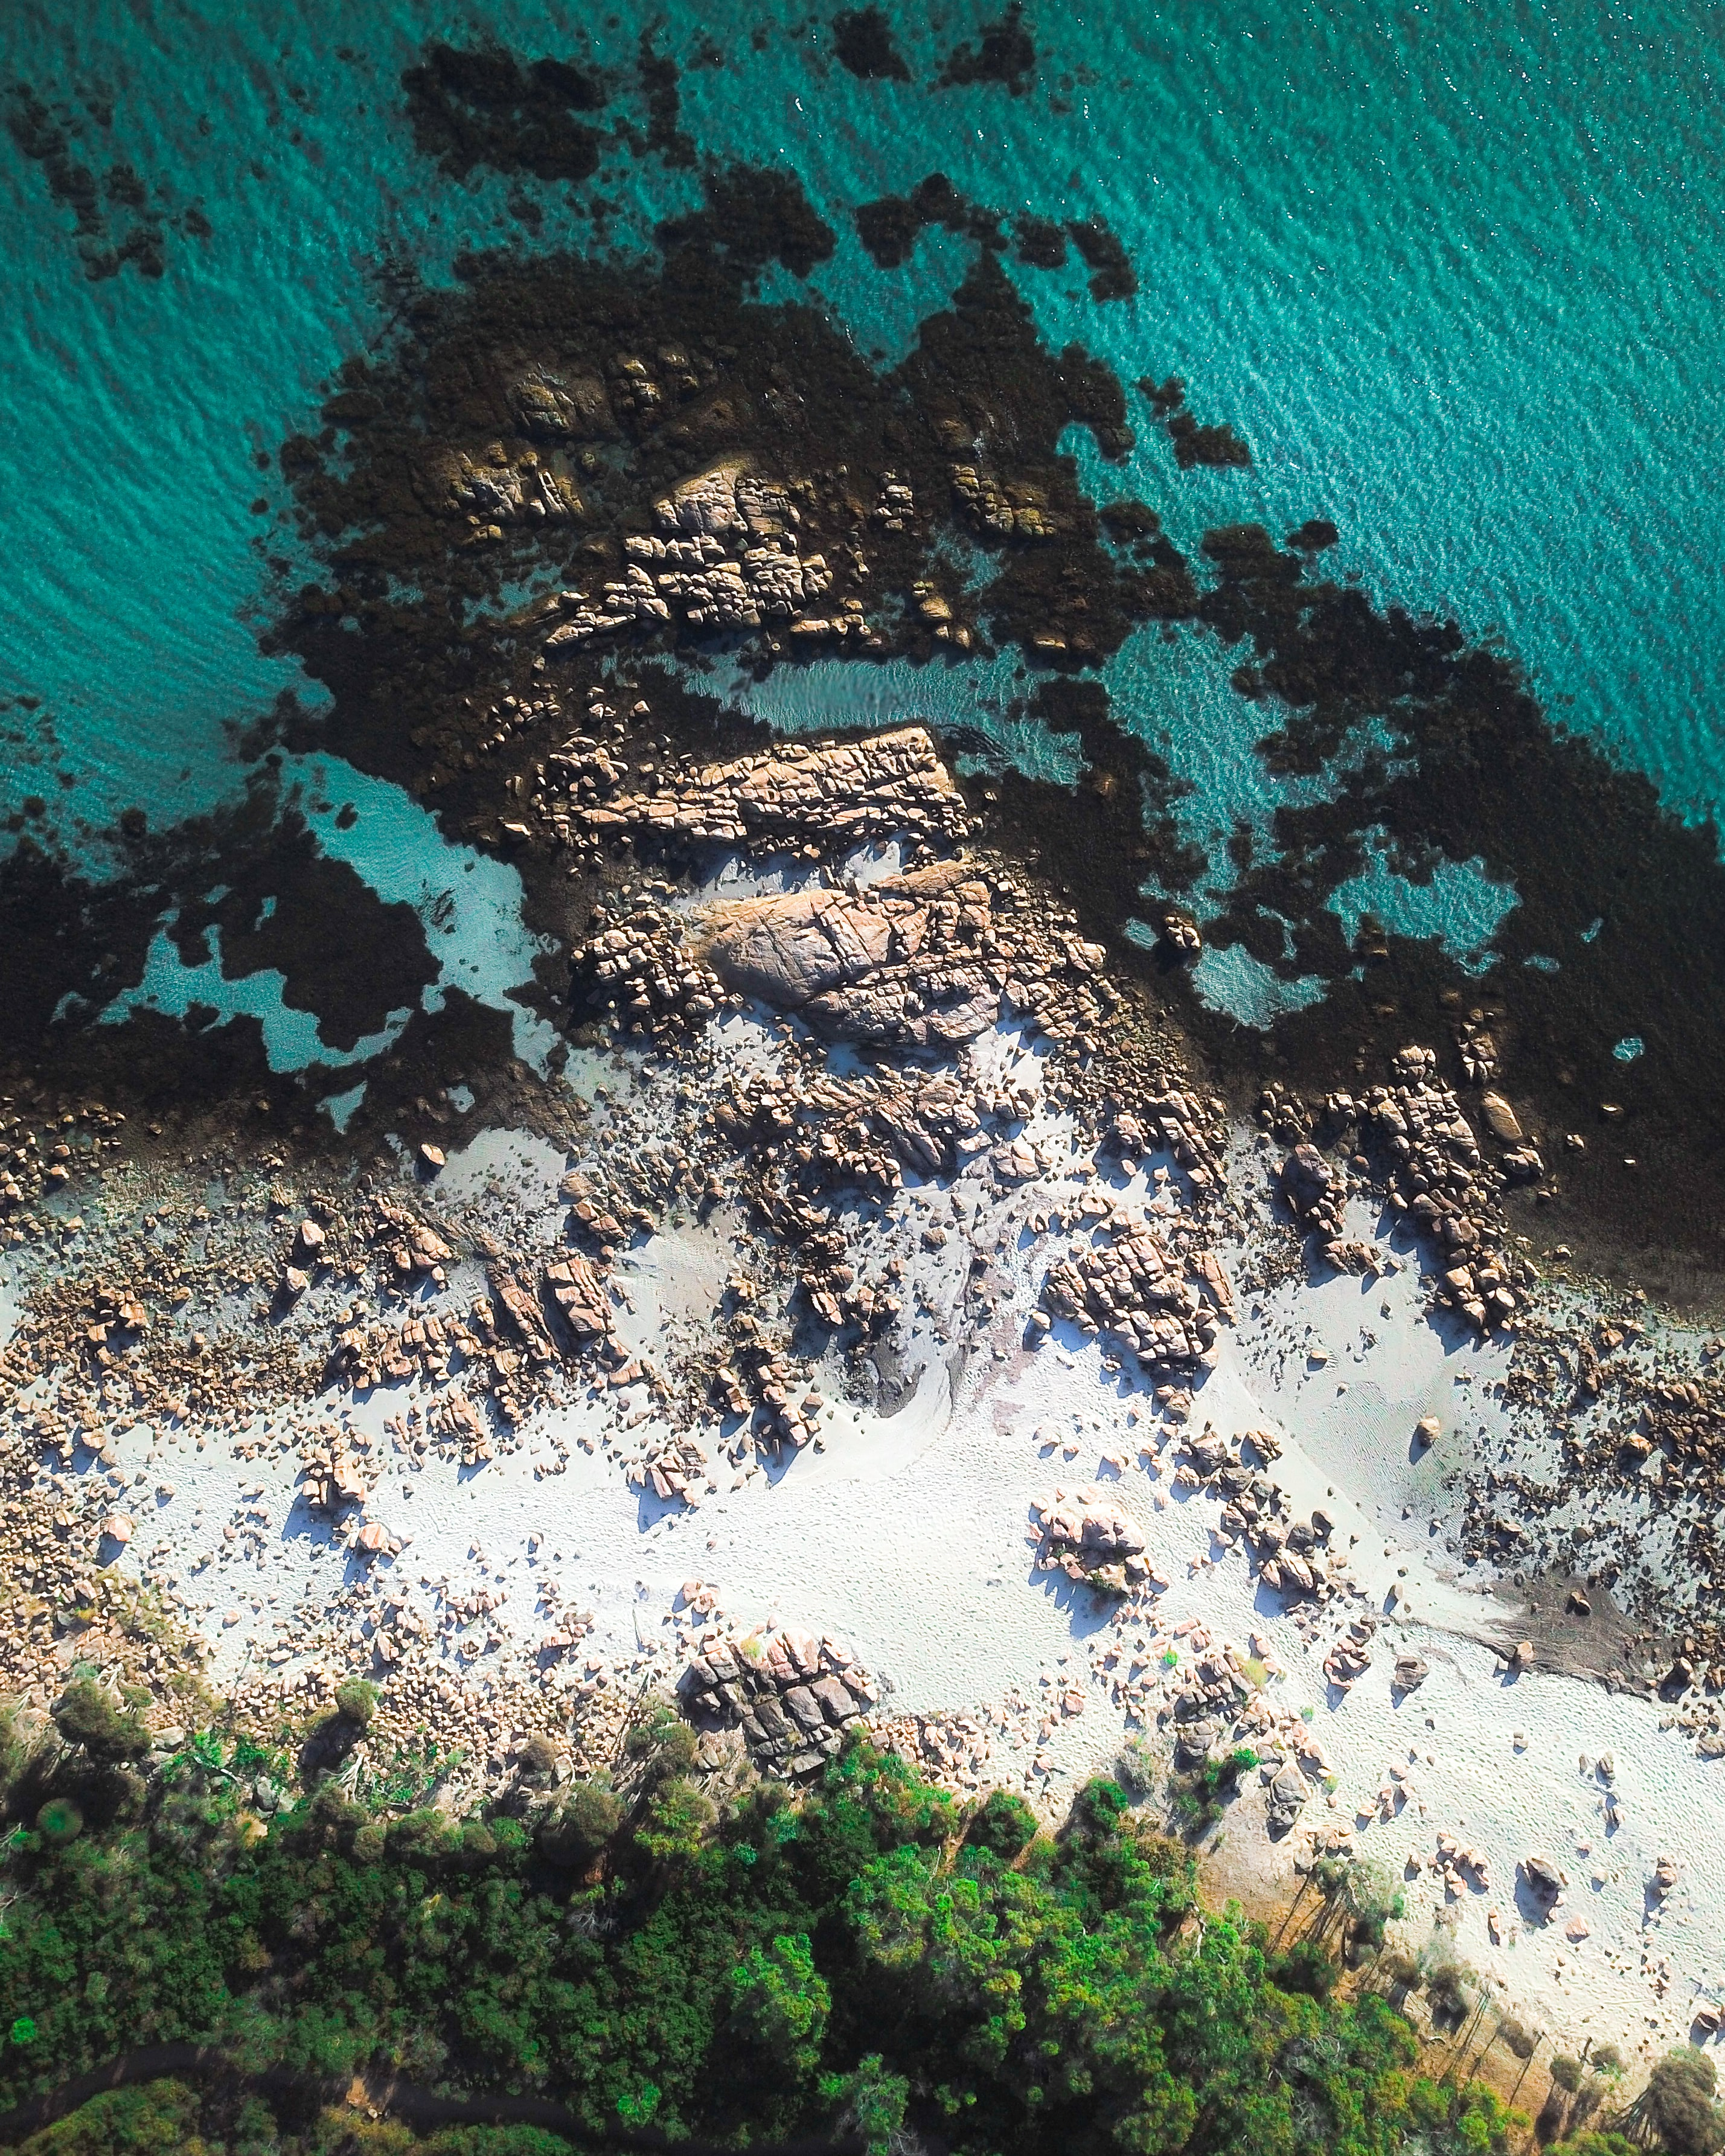 bird's eye view photography of seashore